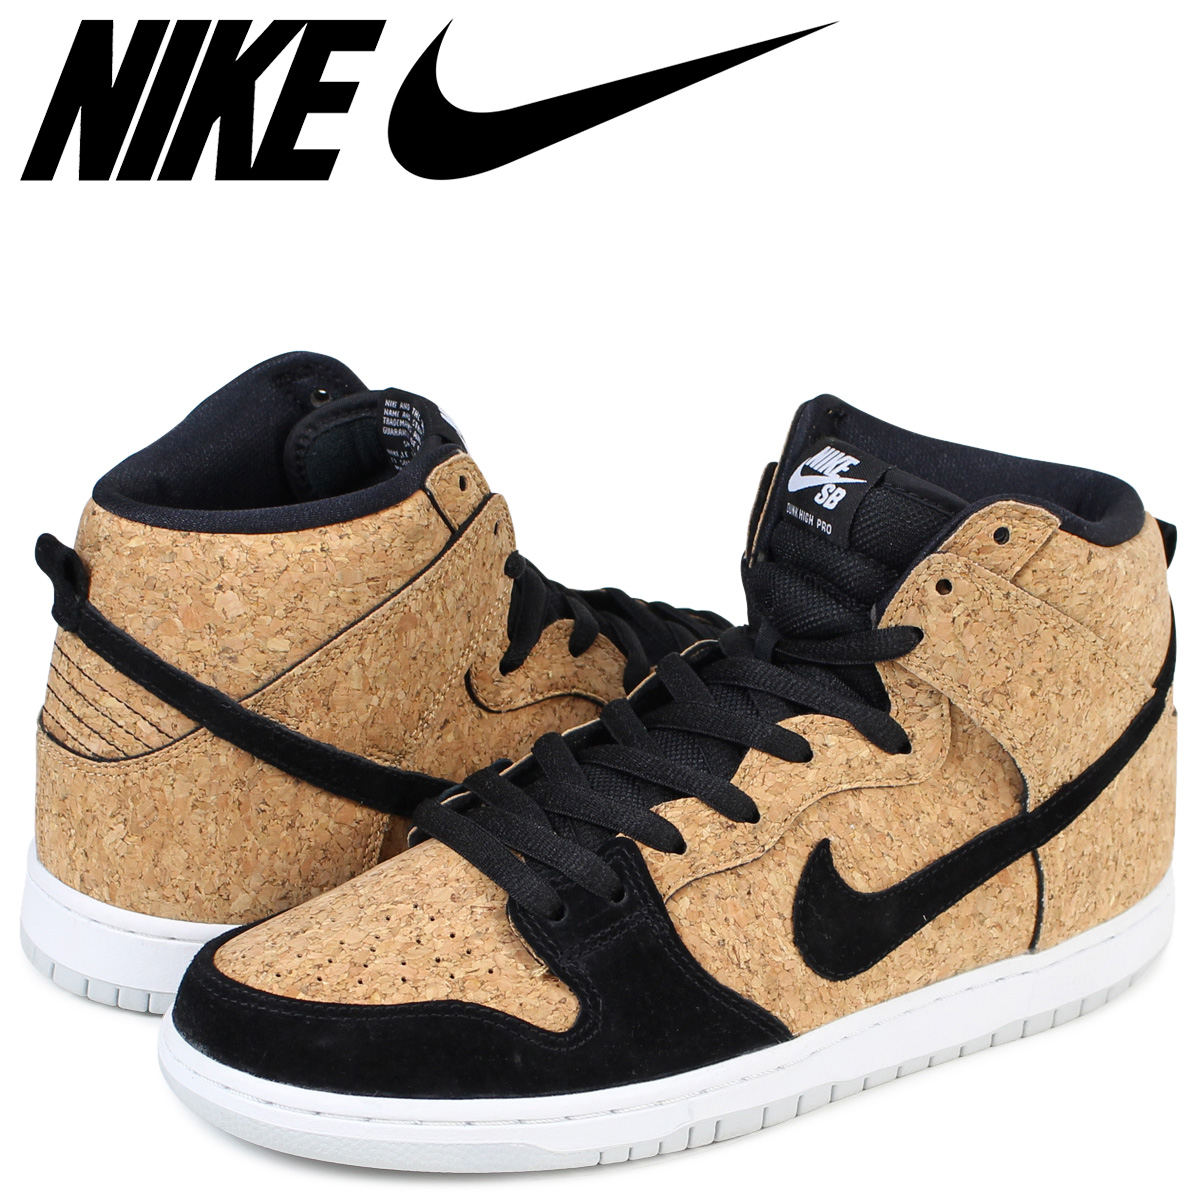 check out 307ee a886b NIKE SB DUNK HIGH PREMIUM CORK Nike dunk high sneakers 313,171-026 men's  shoes white [1711]